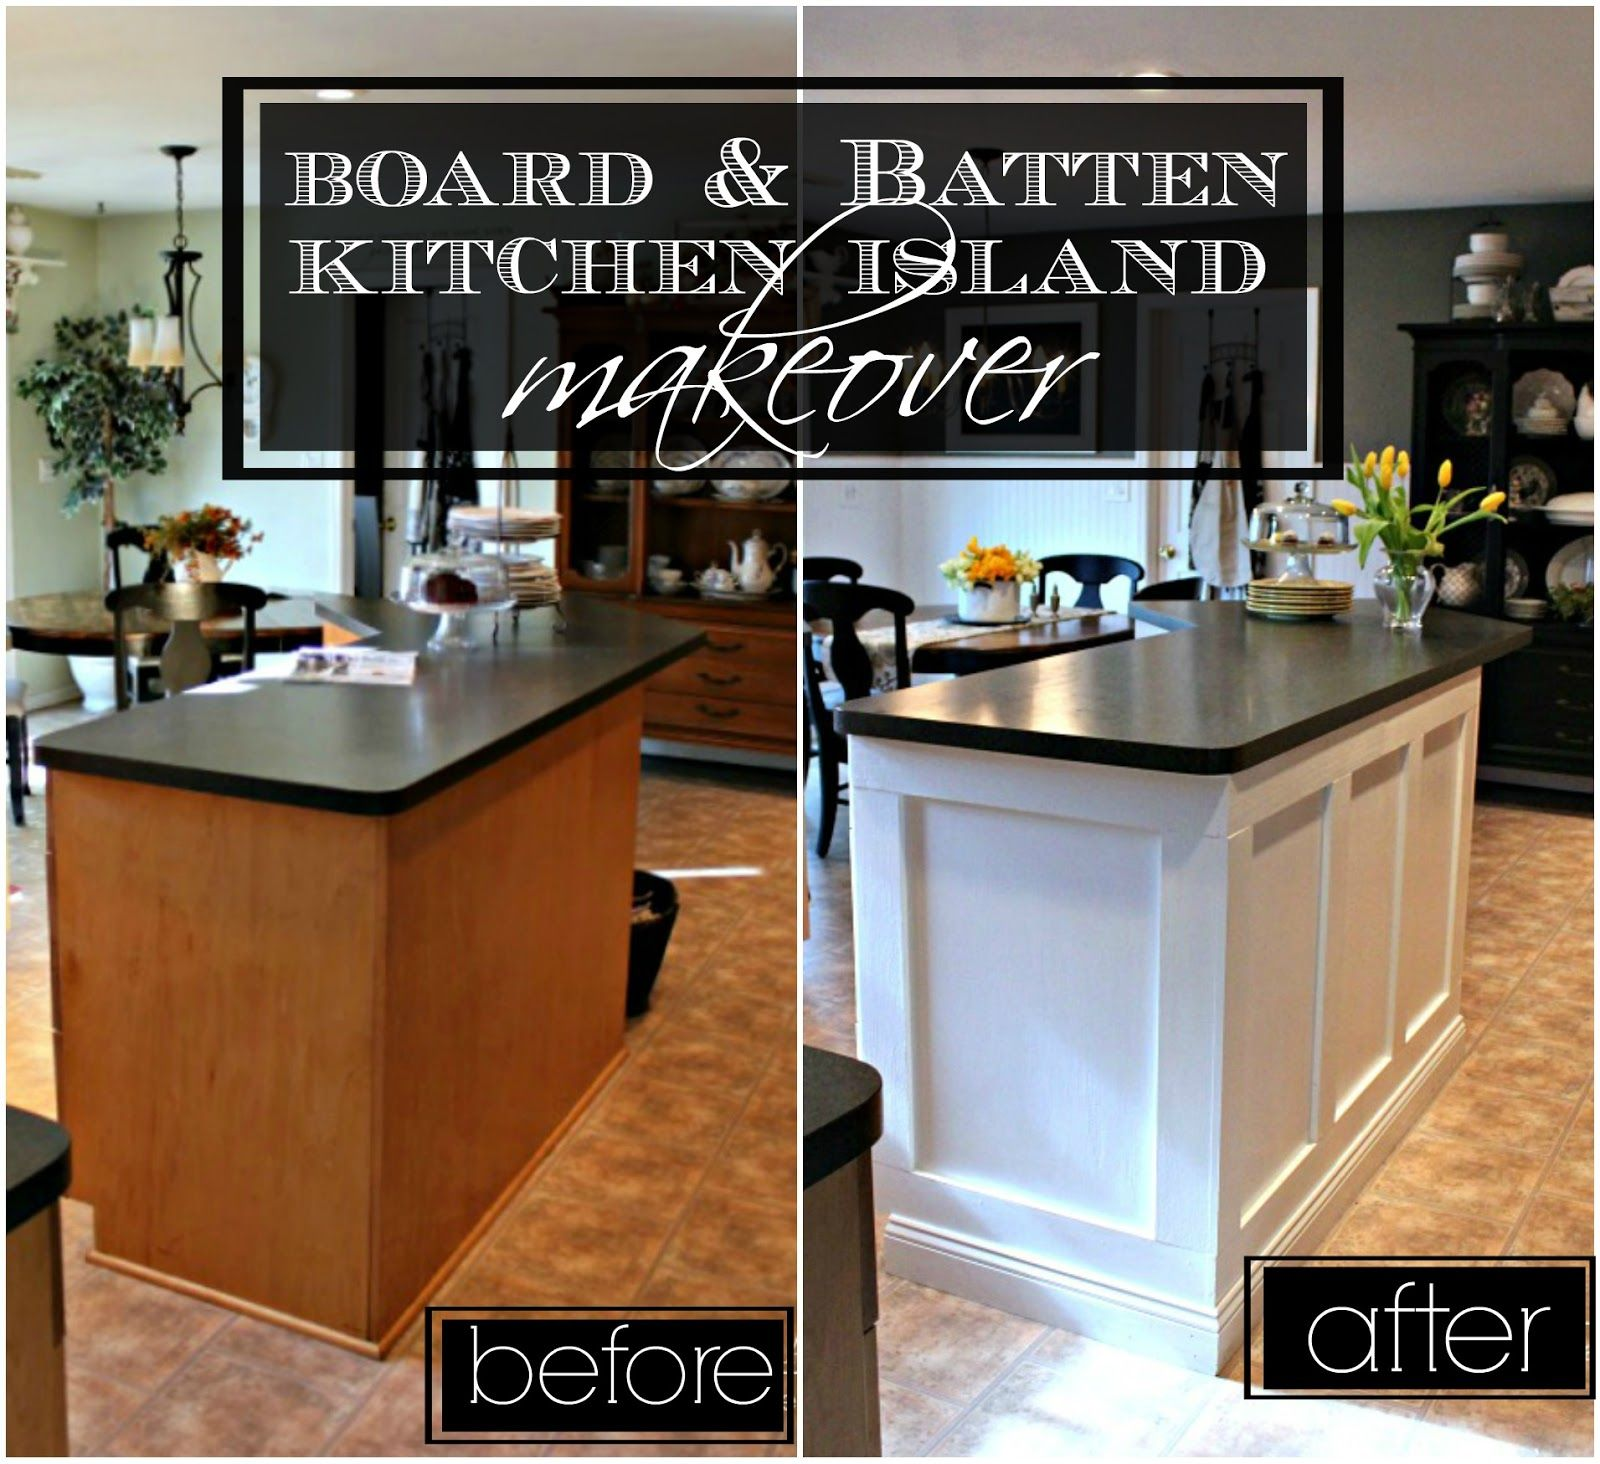 Diy Kitchen Remodel Ideas: Today I Am Going To Share With You The Tutorial On How Mr